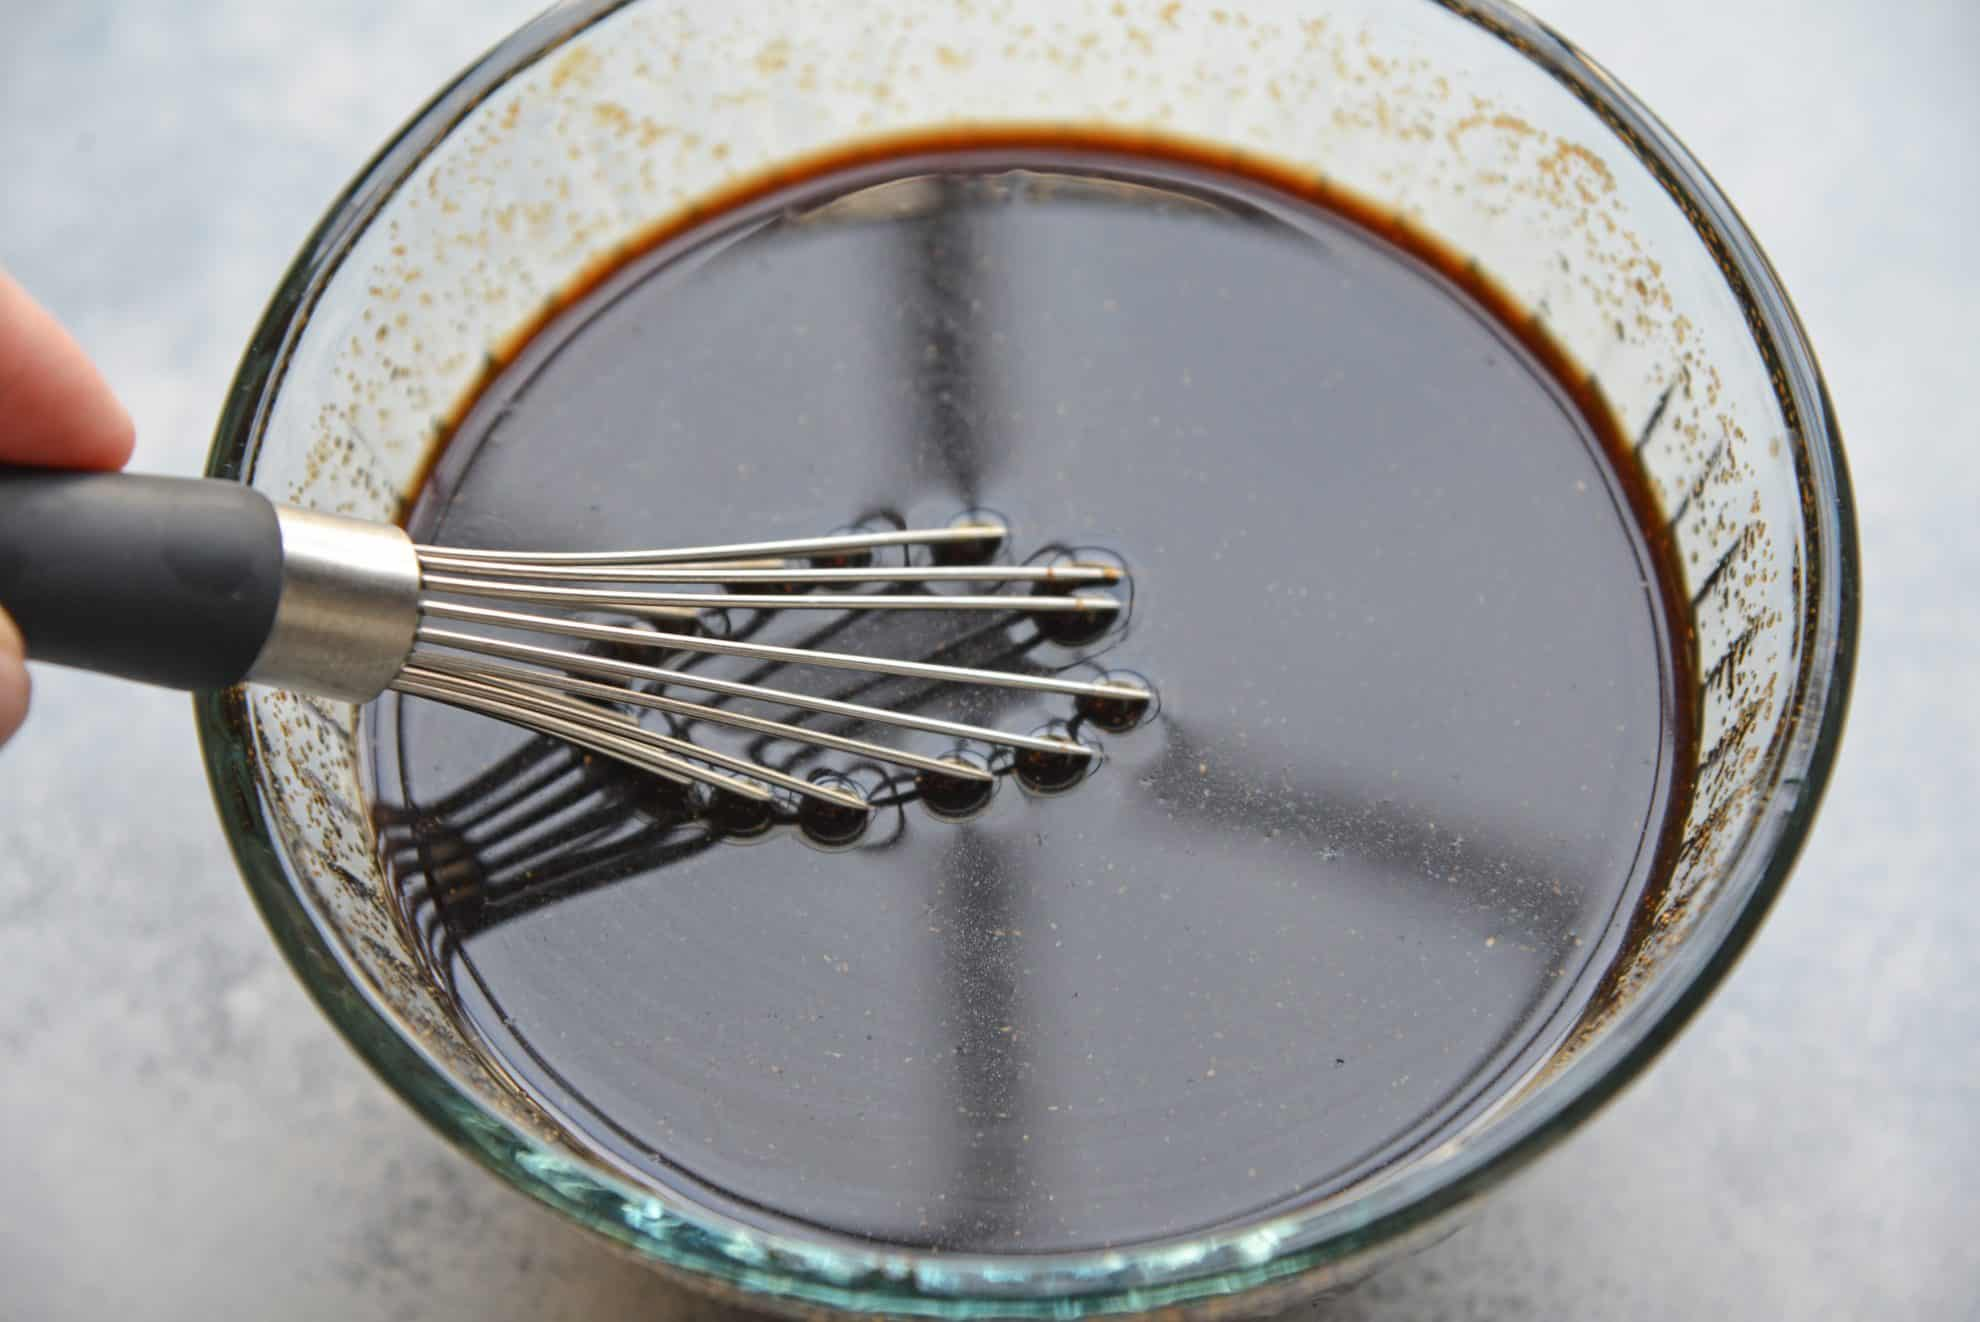 Honey balsamic sauce in a bowl with a whisk